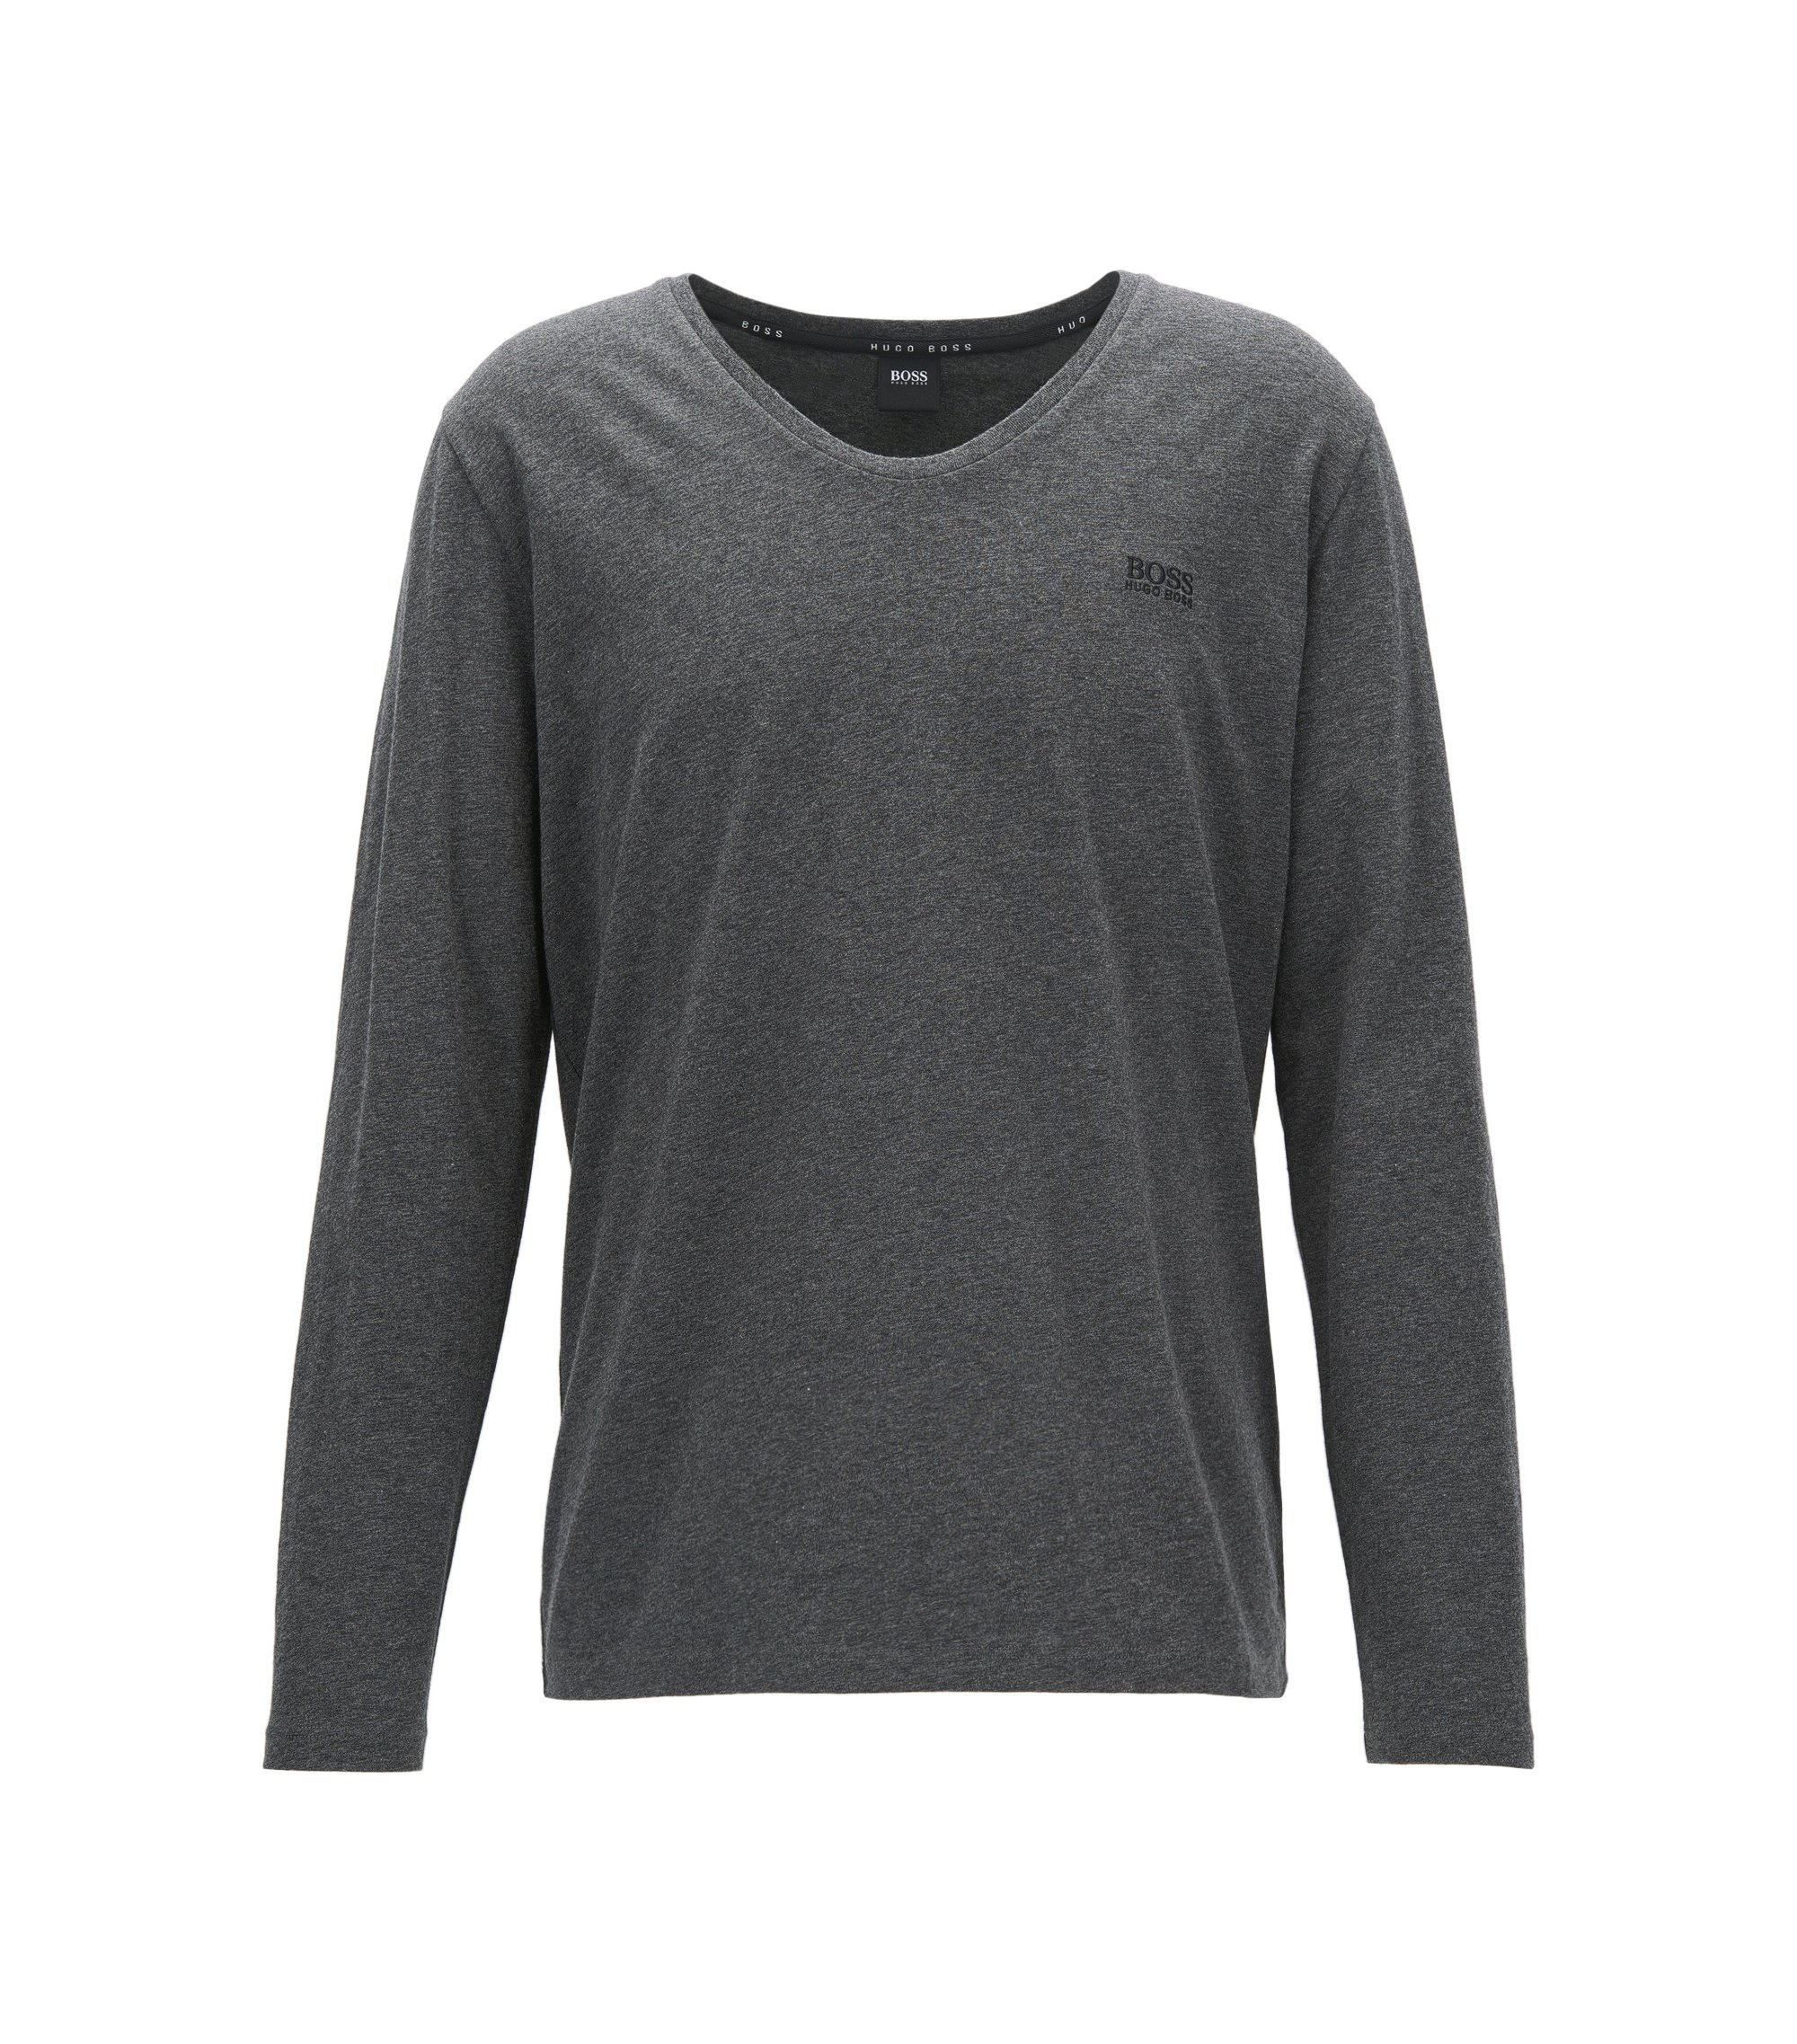 Camiseta loungewear regular fit en algodón elástico, Gris marengo